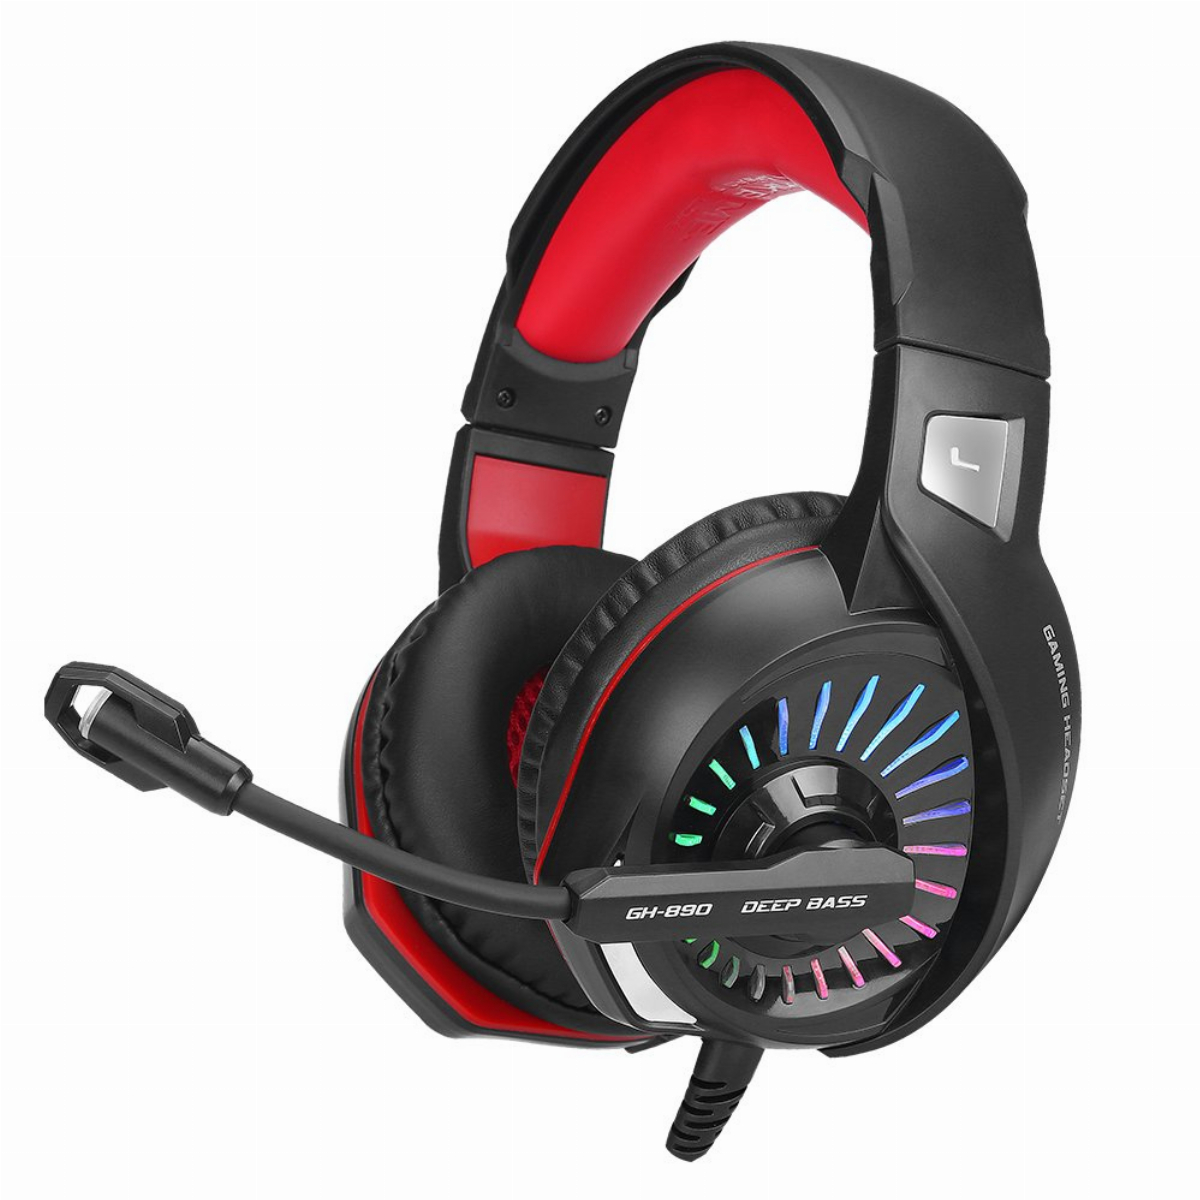 Xtrike ME геймърски слушалки Gaming Headphones GH-890 - RGB, 50mm, PC/Consoles